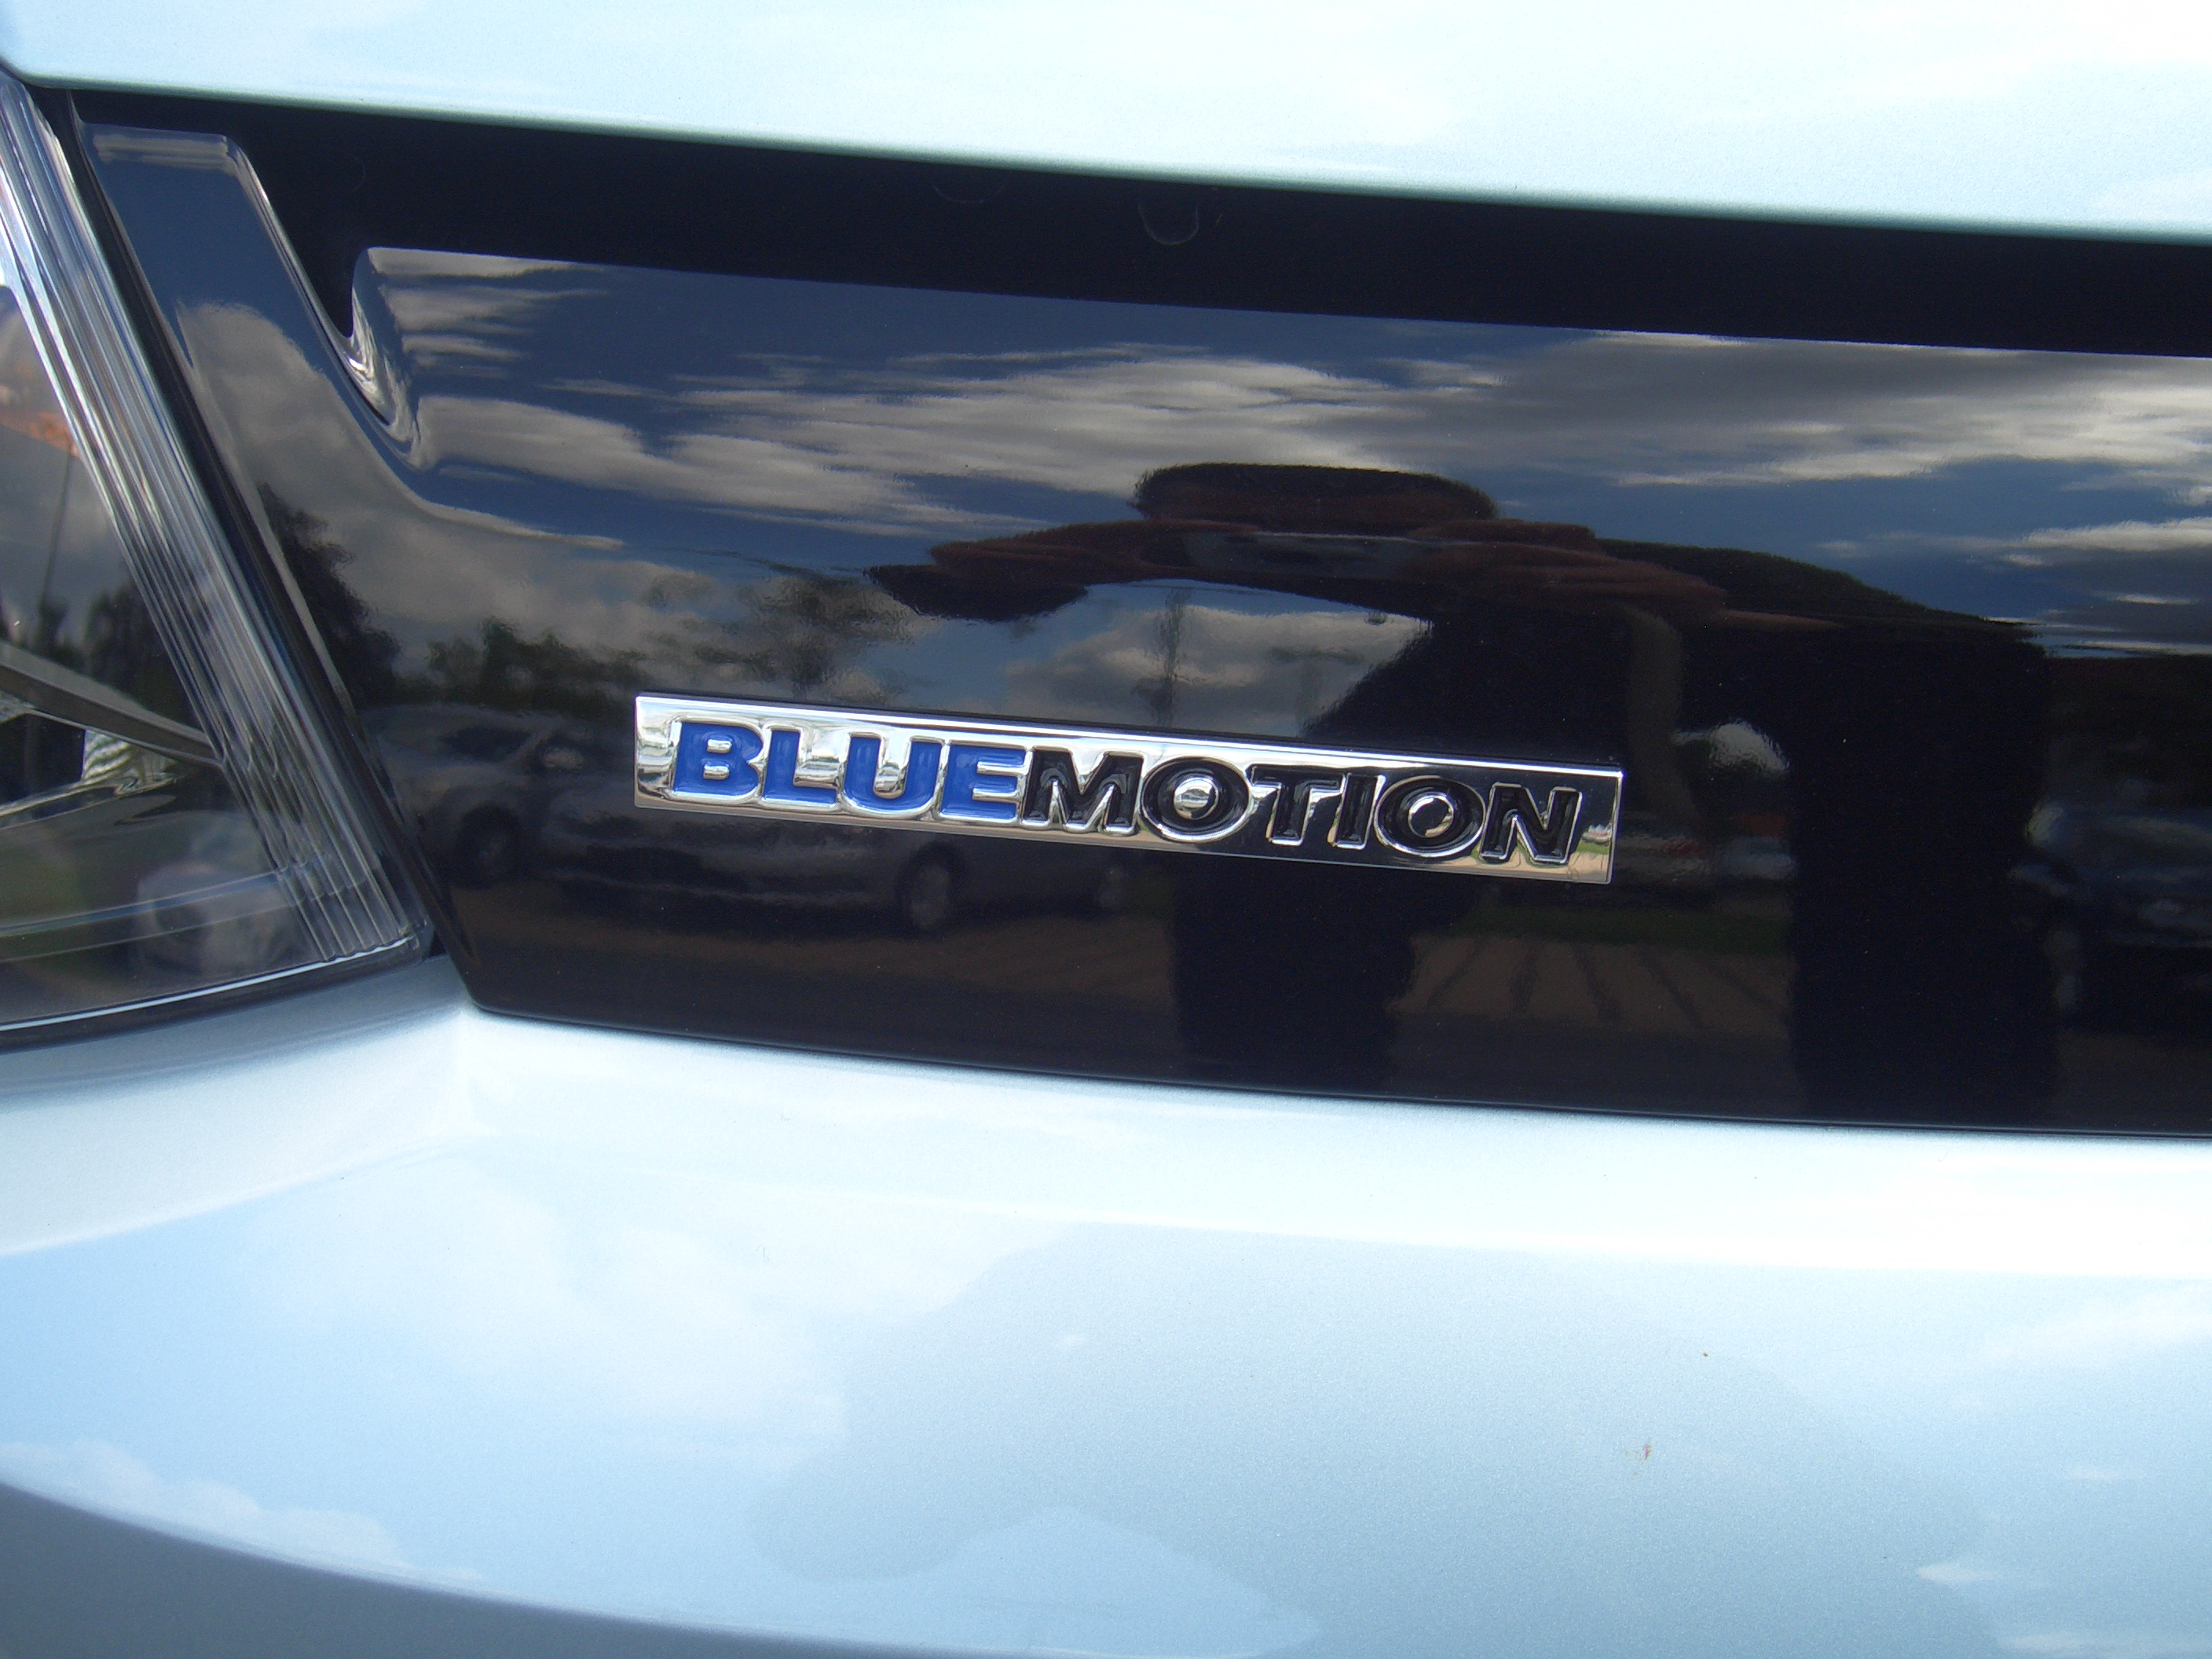 Close-up of VOlkswagen BlueMotion badge on the rear of a VW Polo